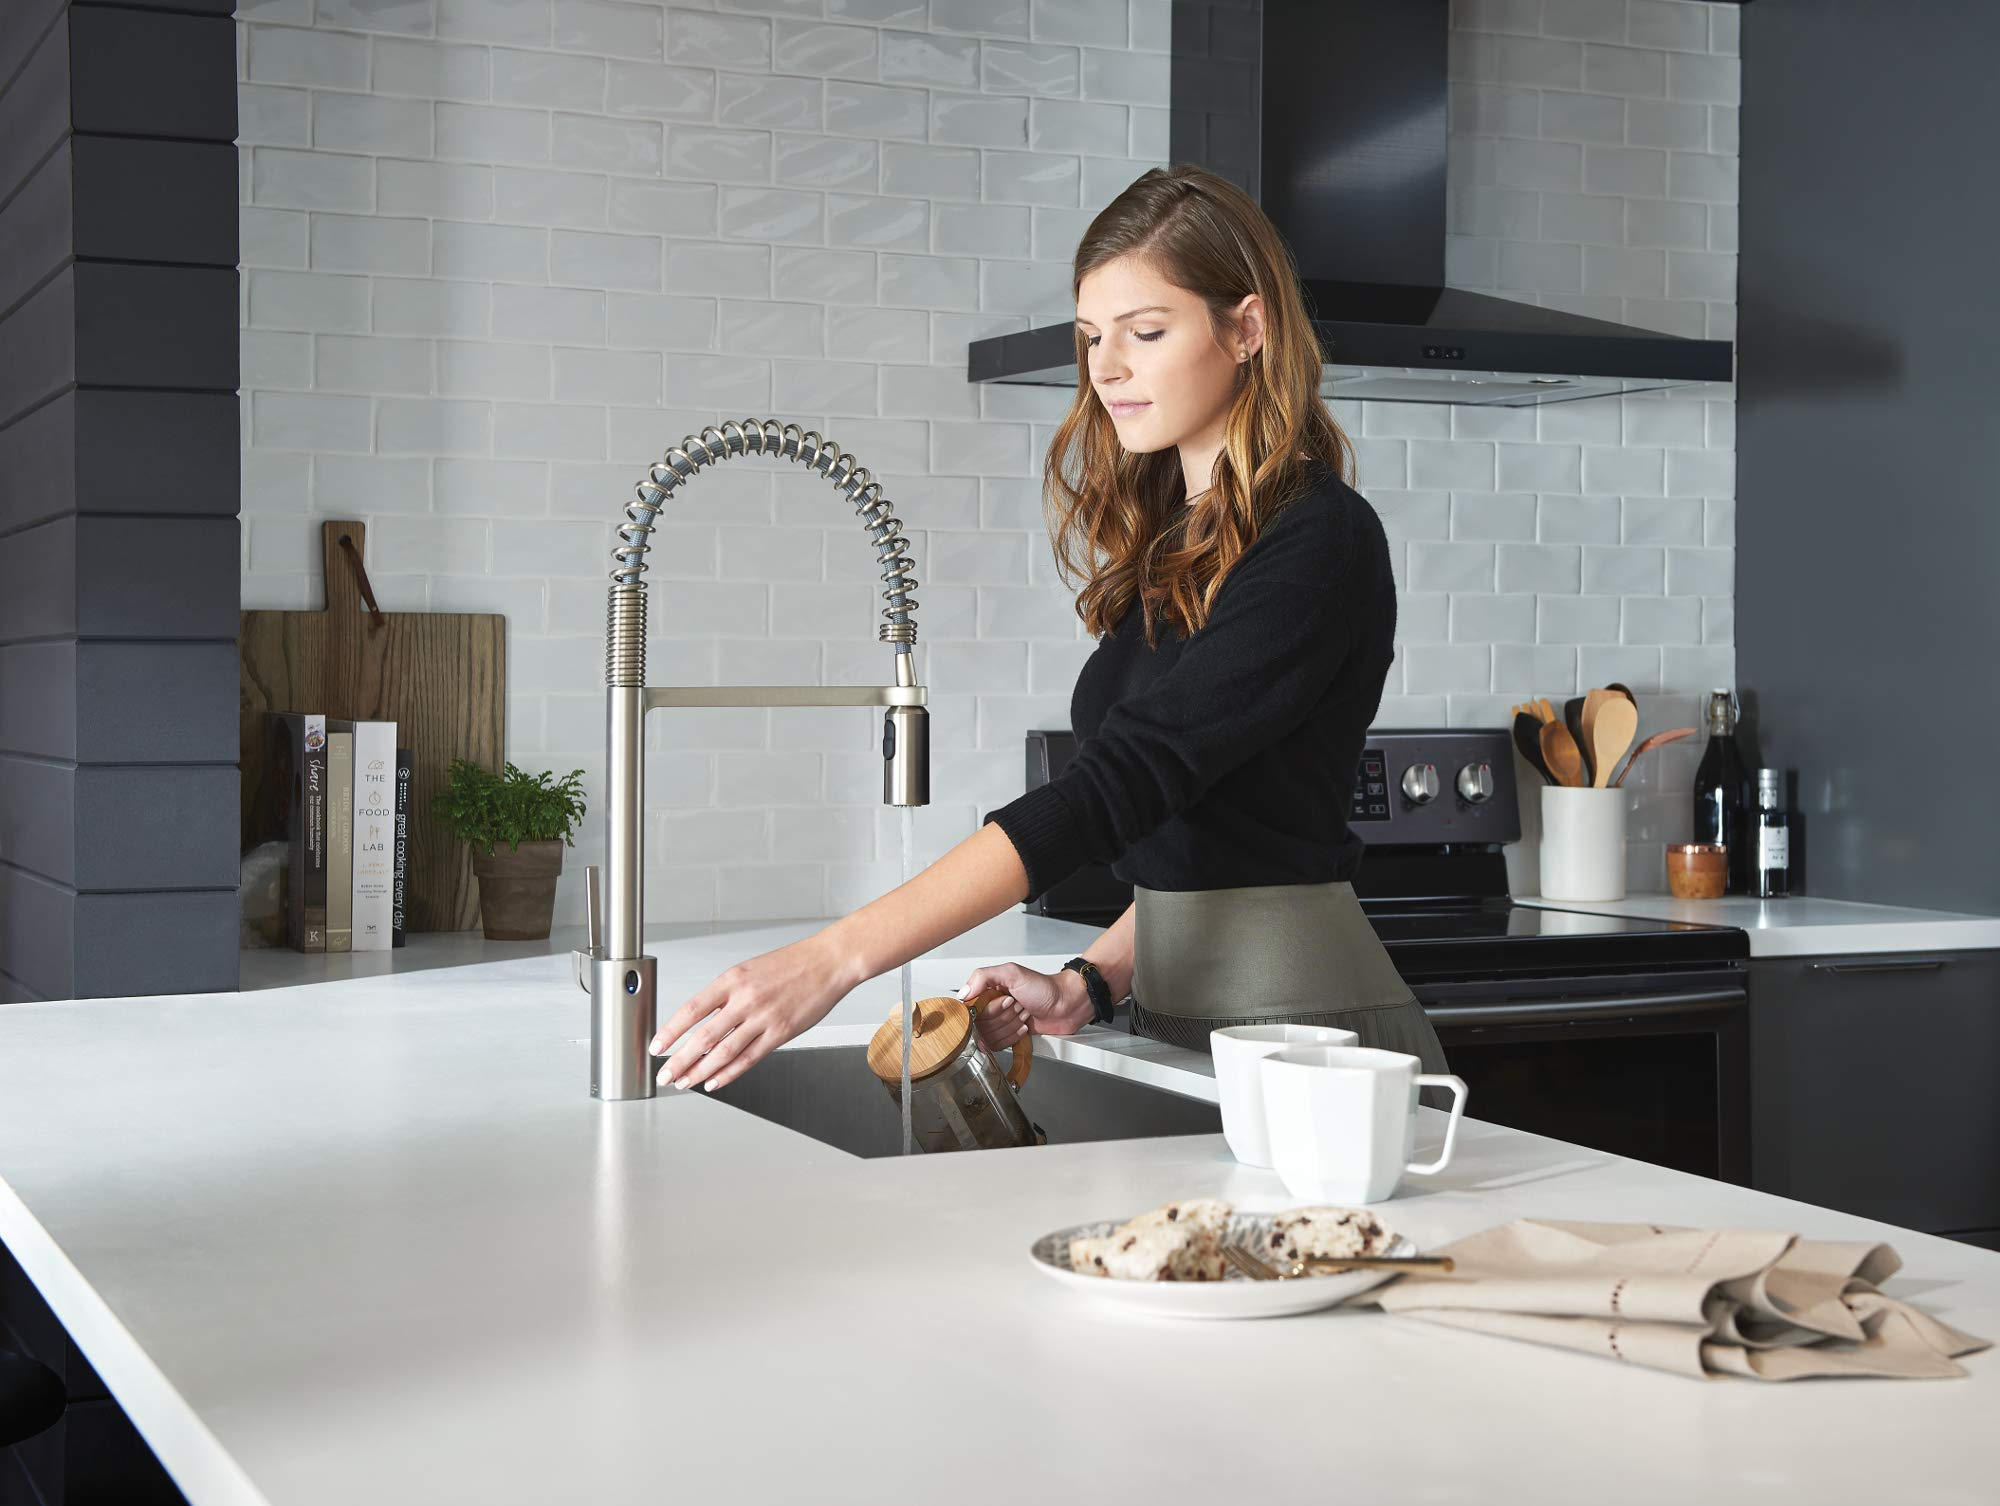 Moen 5923EWSRS Align Motionsense Wave Sensor Touchless One-Handle High Arc Spring Pre-Rinse Pulldown Kitchen Faucet, Spot Resist Stainless by Moen (Image #4)